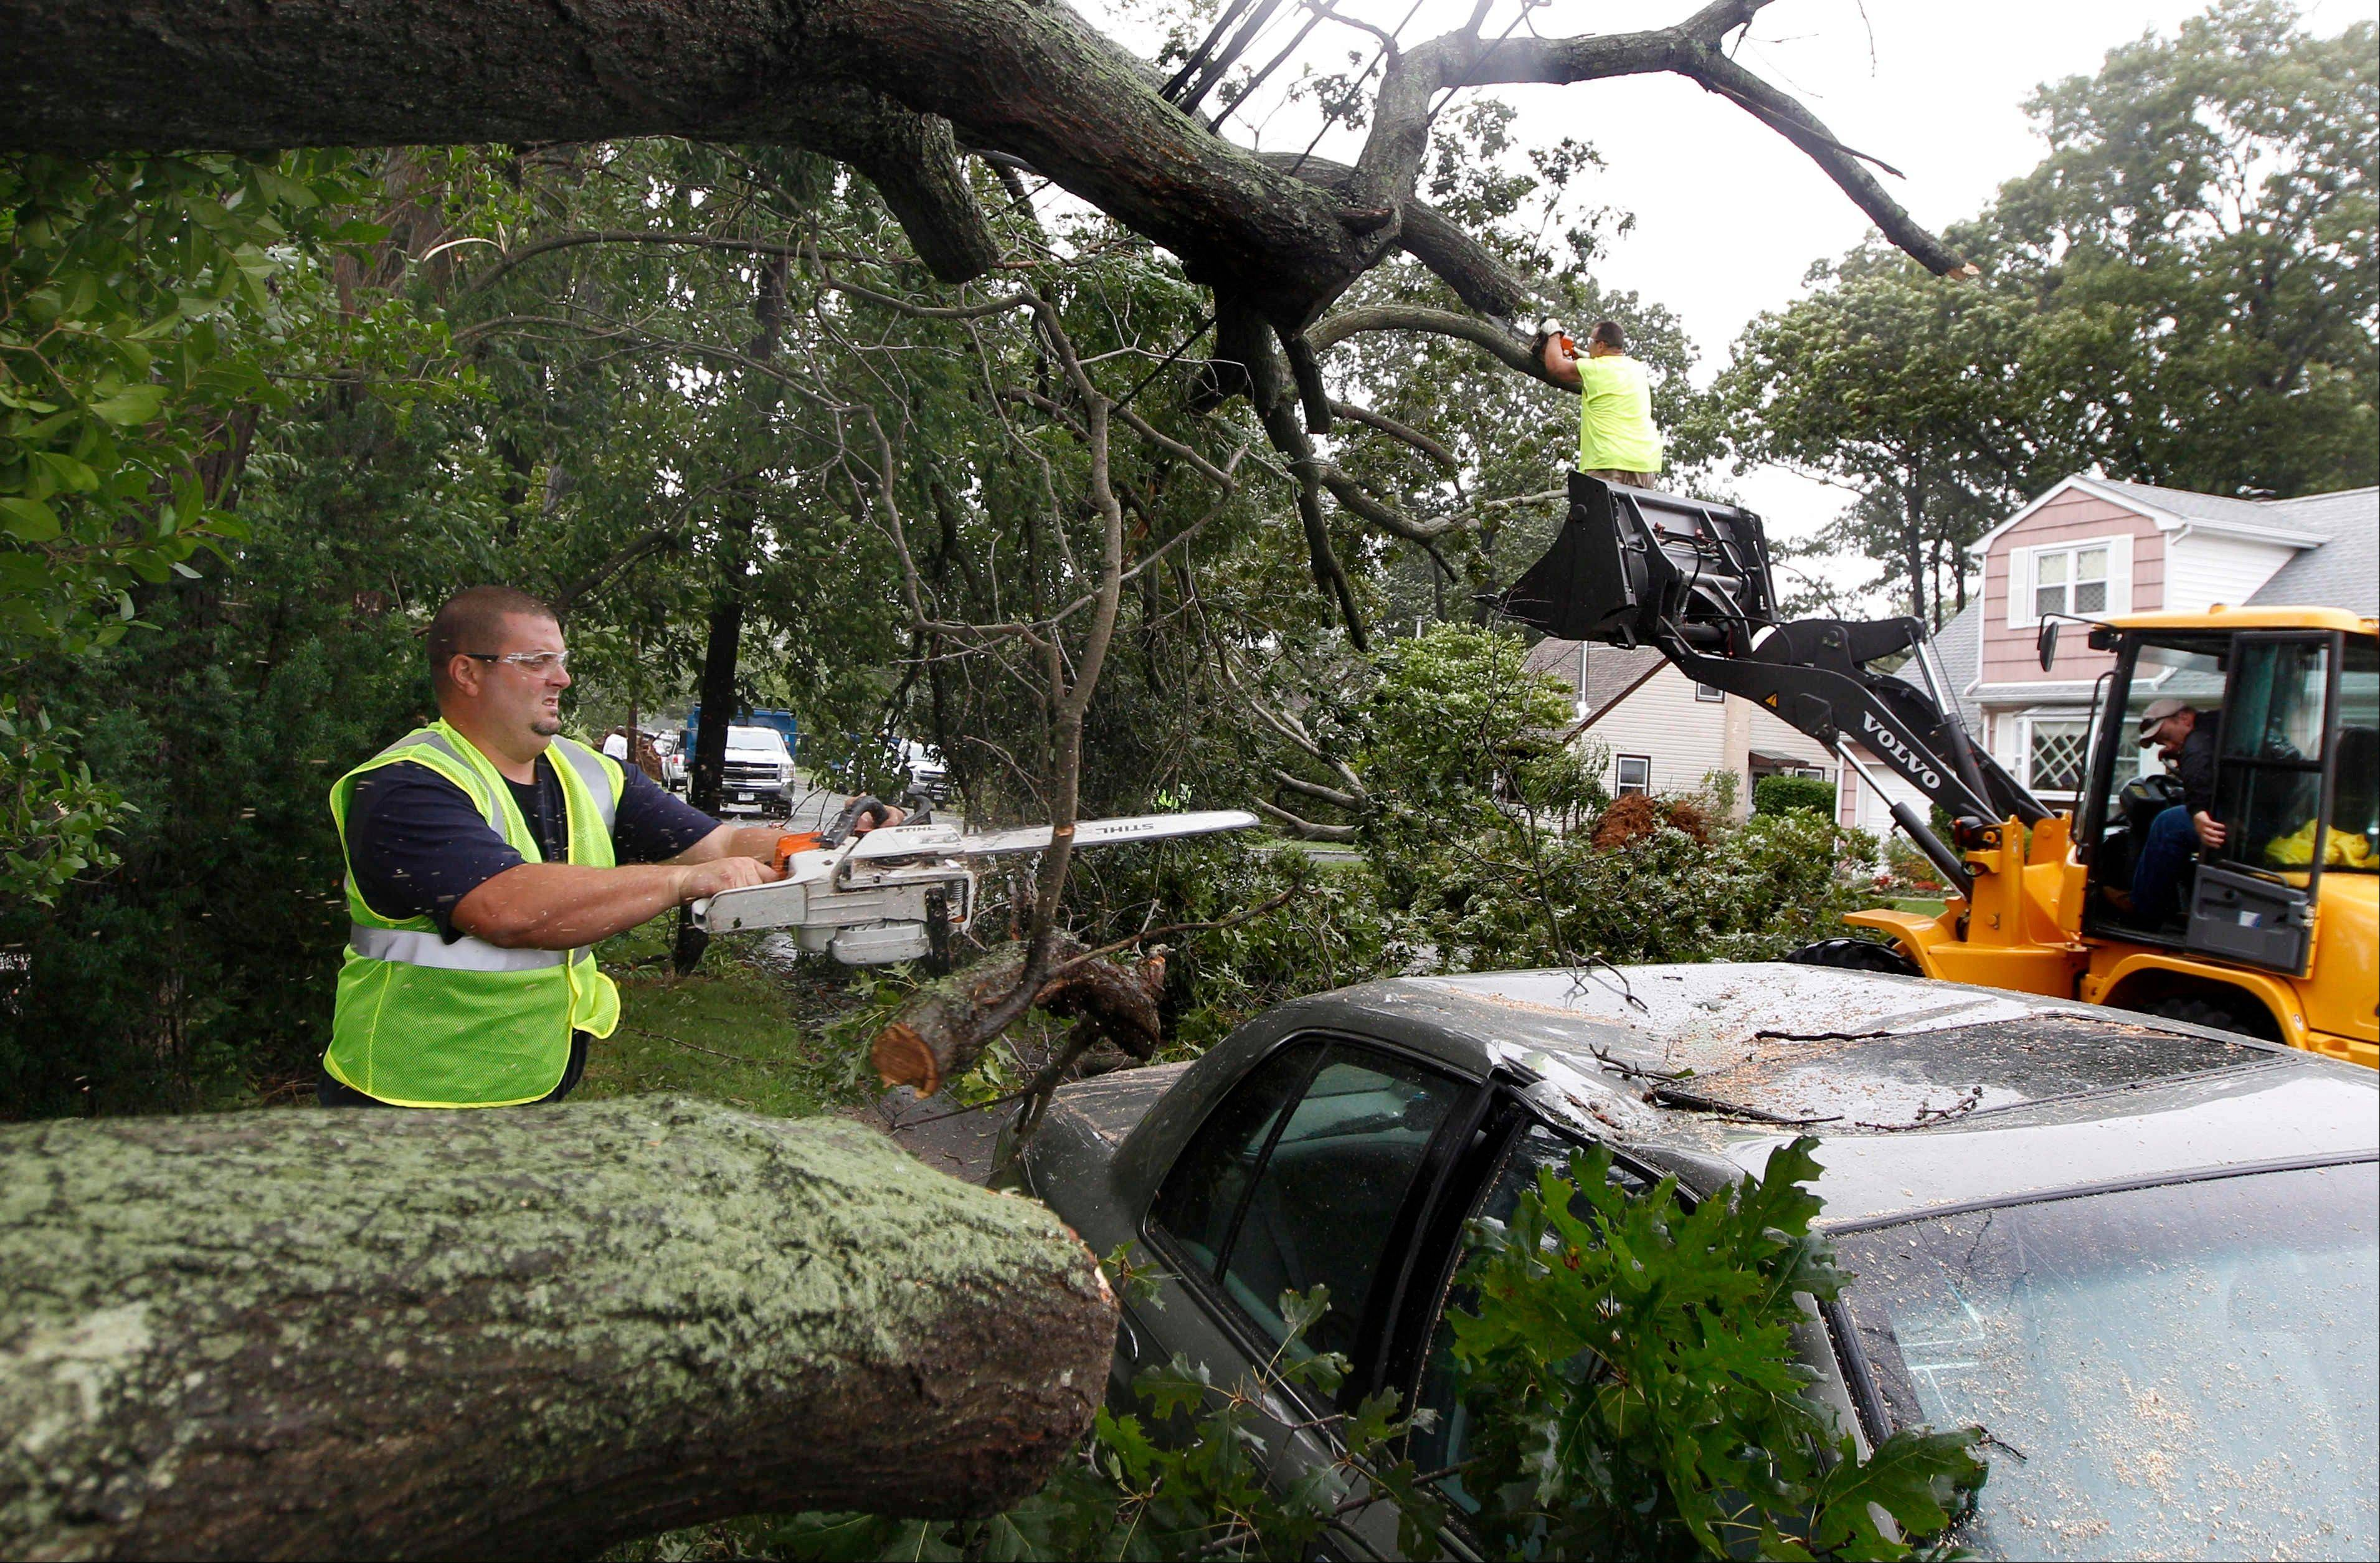 Workers clear trees that fell on power lines and cars after the effects of Hurricane Irene in Amittyville, N.Y., on Long Island, Sunday, Aug. 28, 2011.